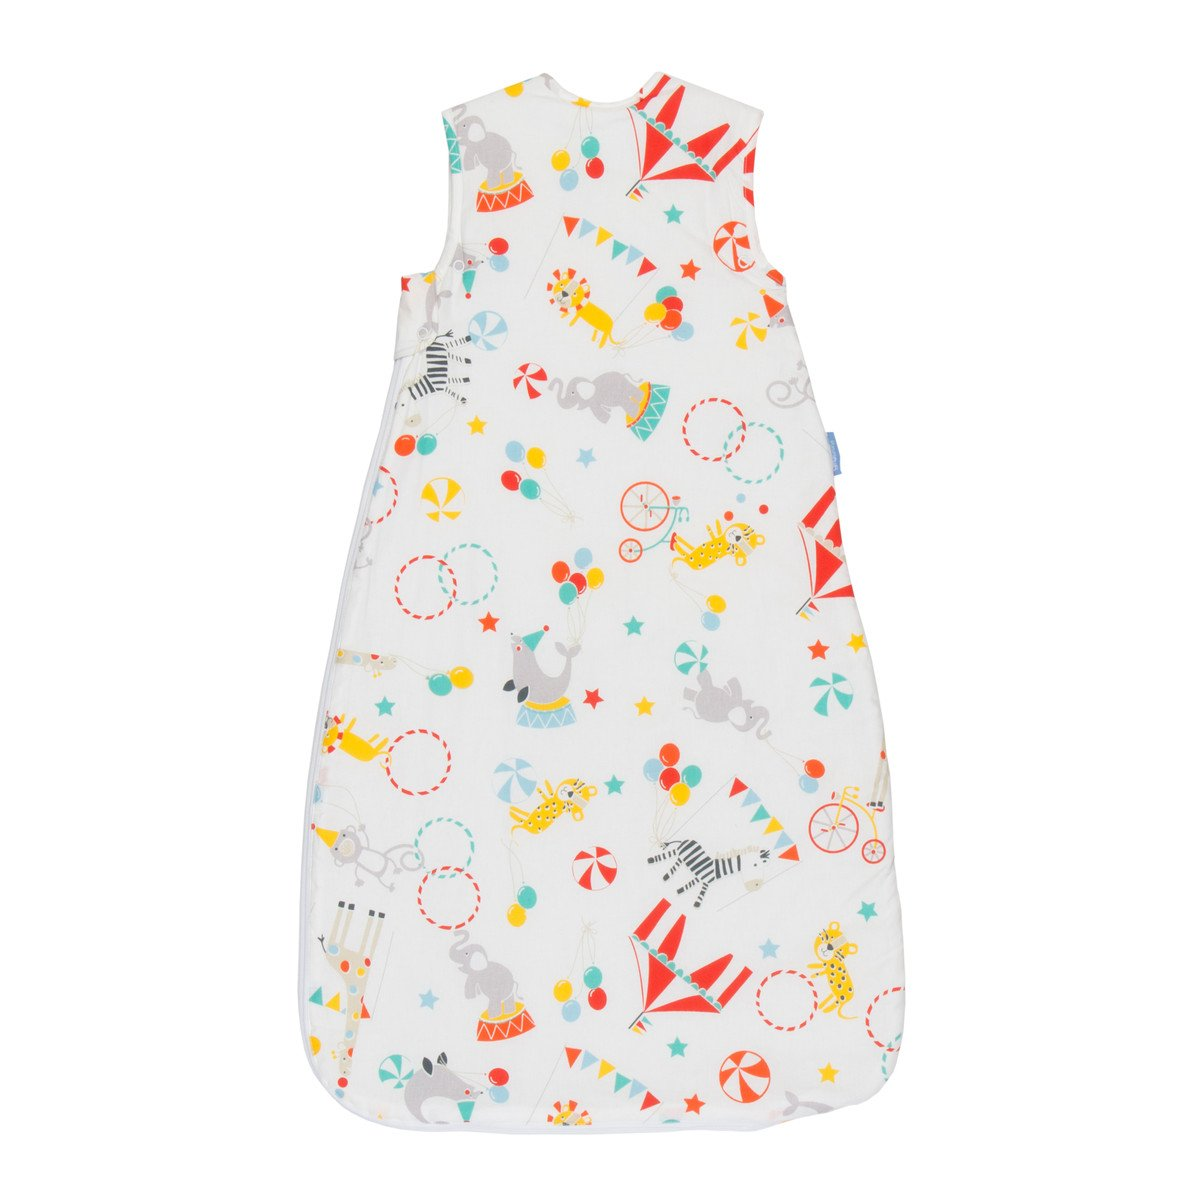 Grobag Wash & Wear Baby Sleeping Bag TWIN Pack - Roll Up 2.5 Tog (18-36 Months)